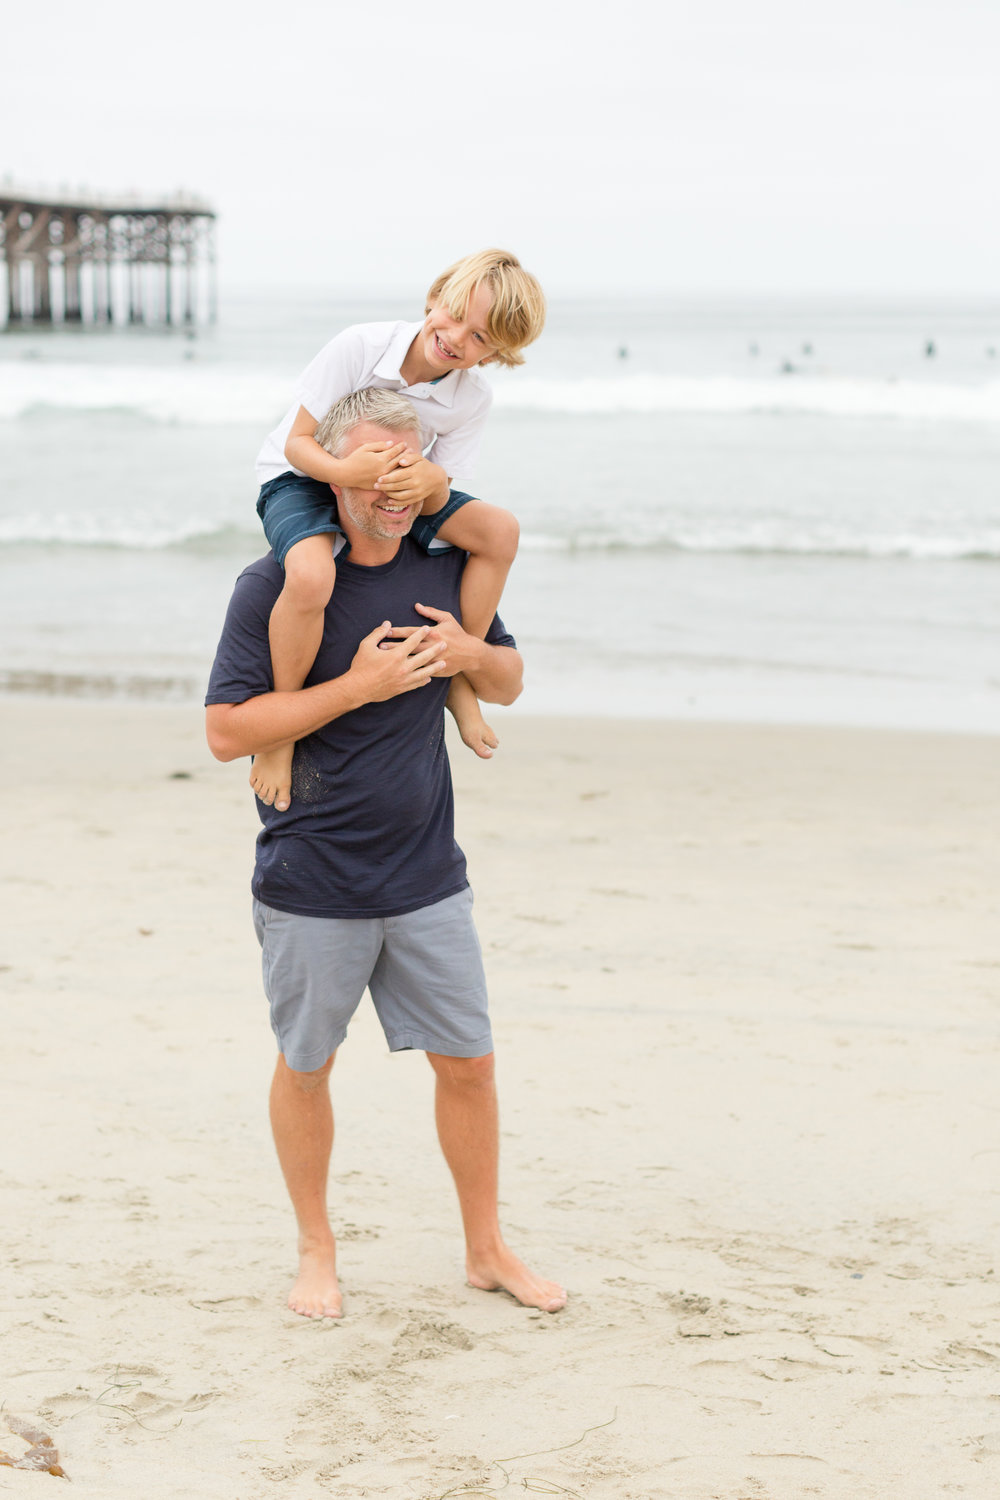 San_Diego_Family_photographer_christine_dammann_photography_Making_family_photos_fun_blog_WS5